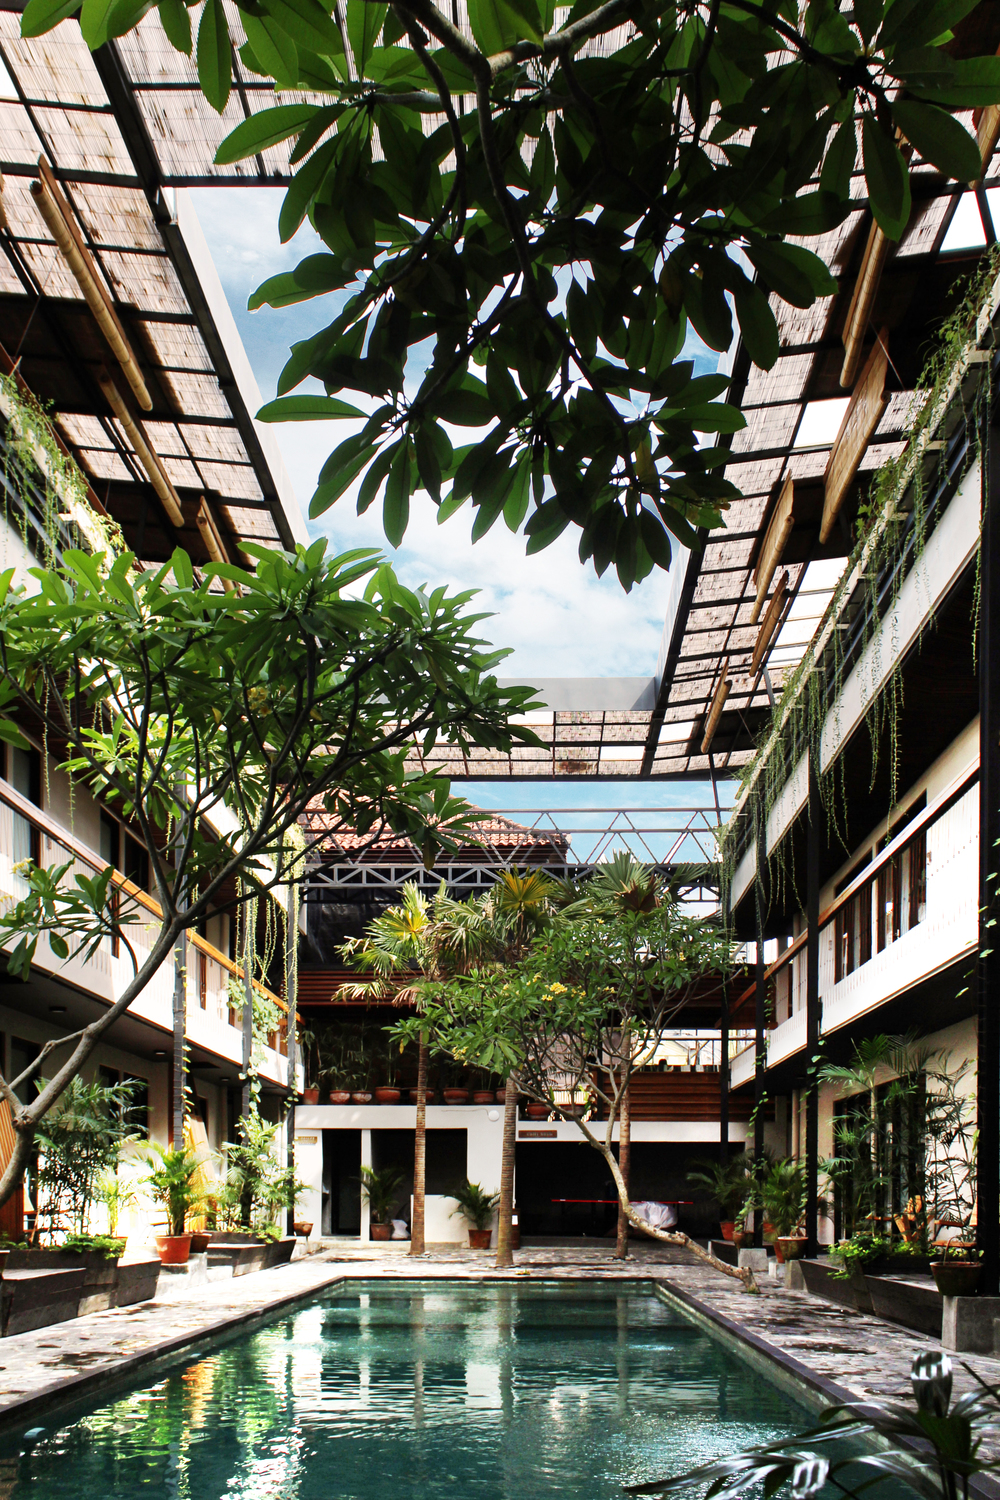 Courtyard of Roam by architect Alexis Dornier in Bali